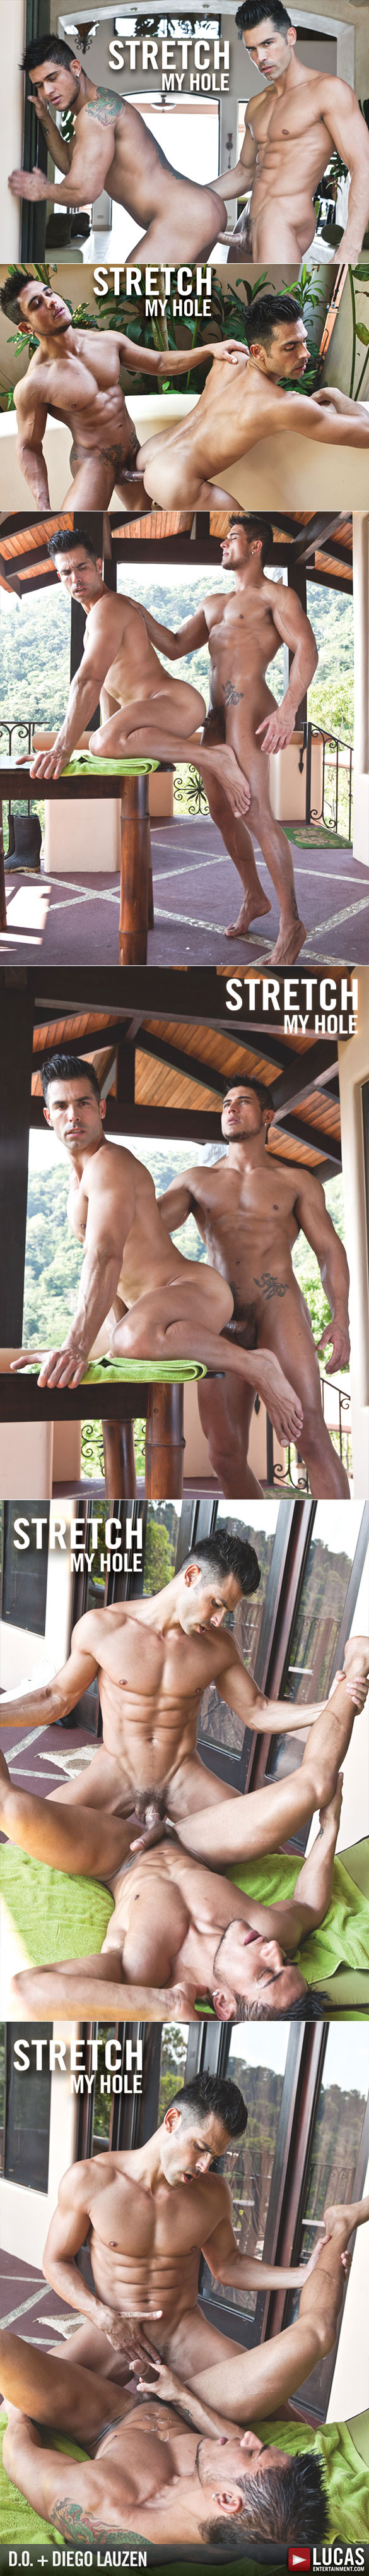 """Lucas Raunch: D.O. and Diego Lauzen's hardcore ass play in """"Stretch My Hole"""""""